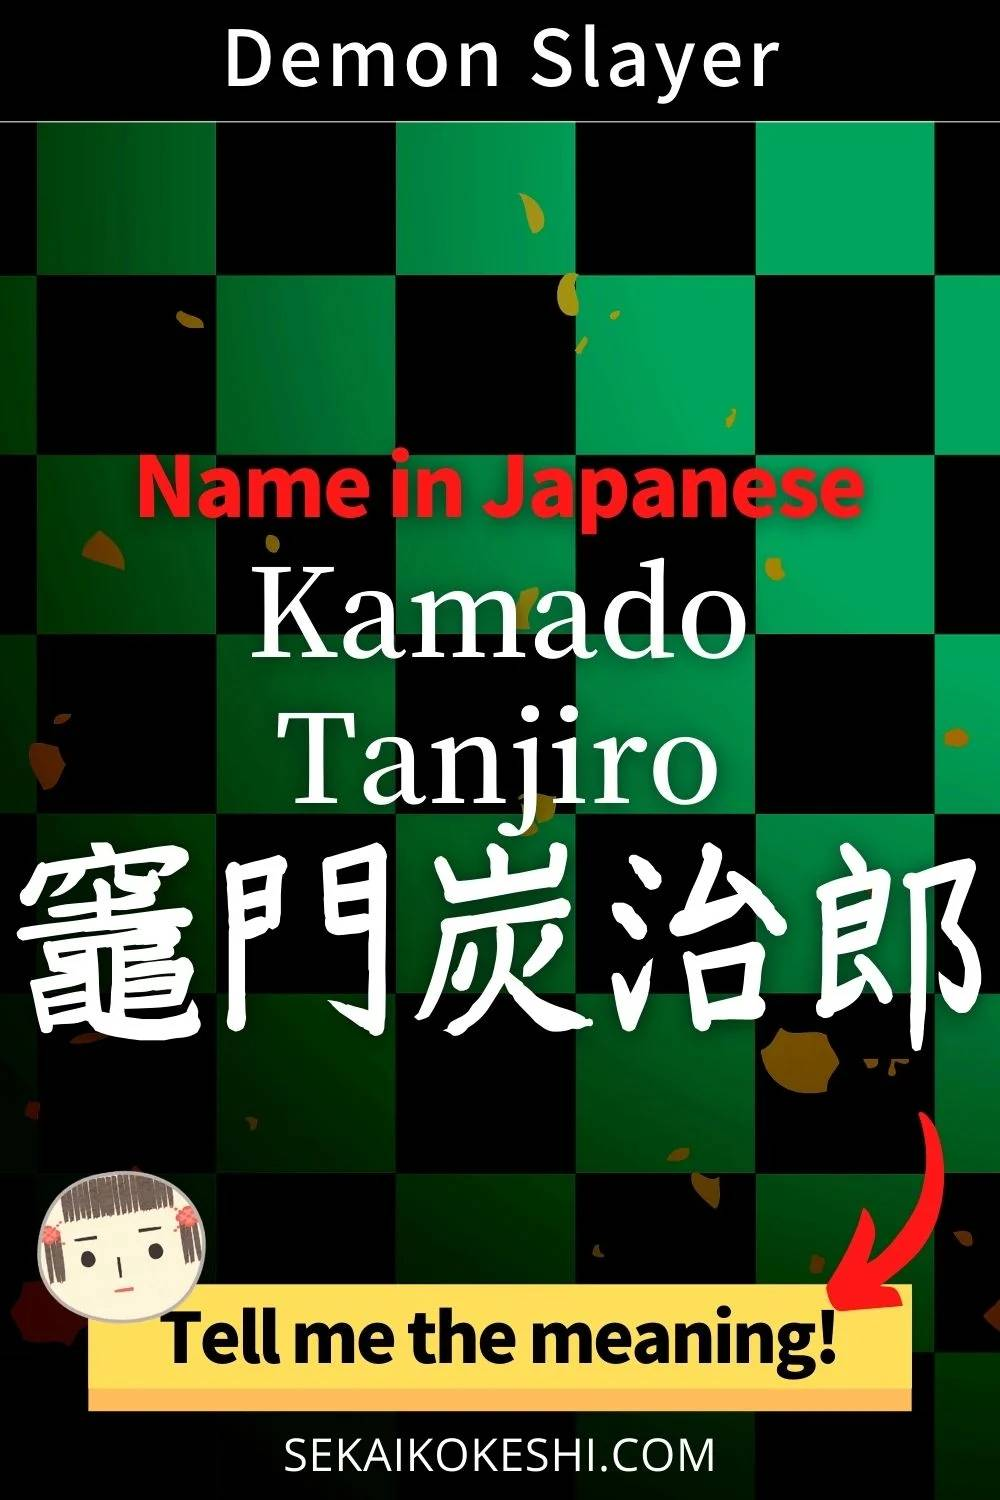 demon slayer, name in japanese, kamado tanjiro, tell me the meaning!